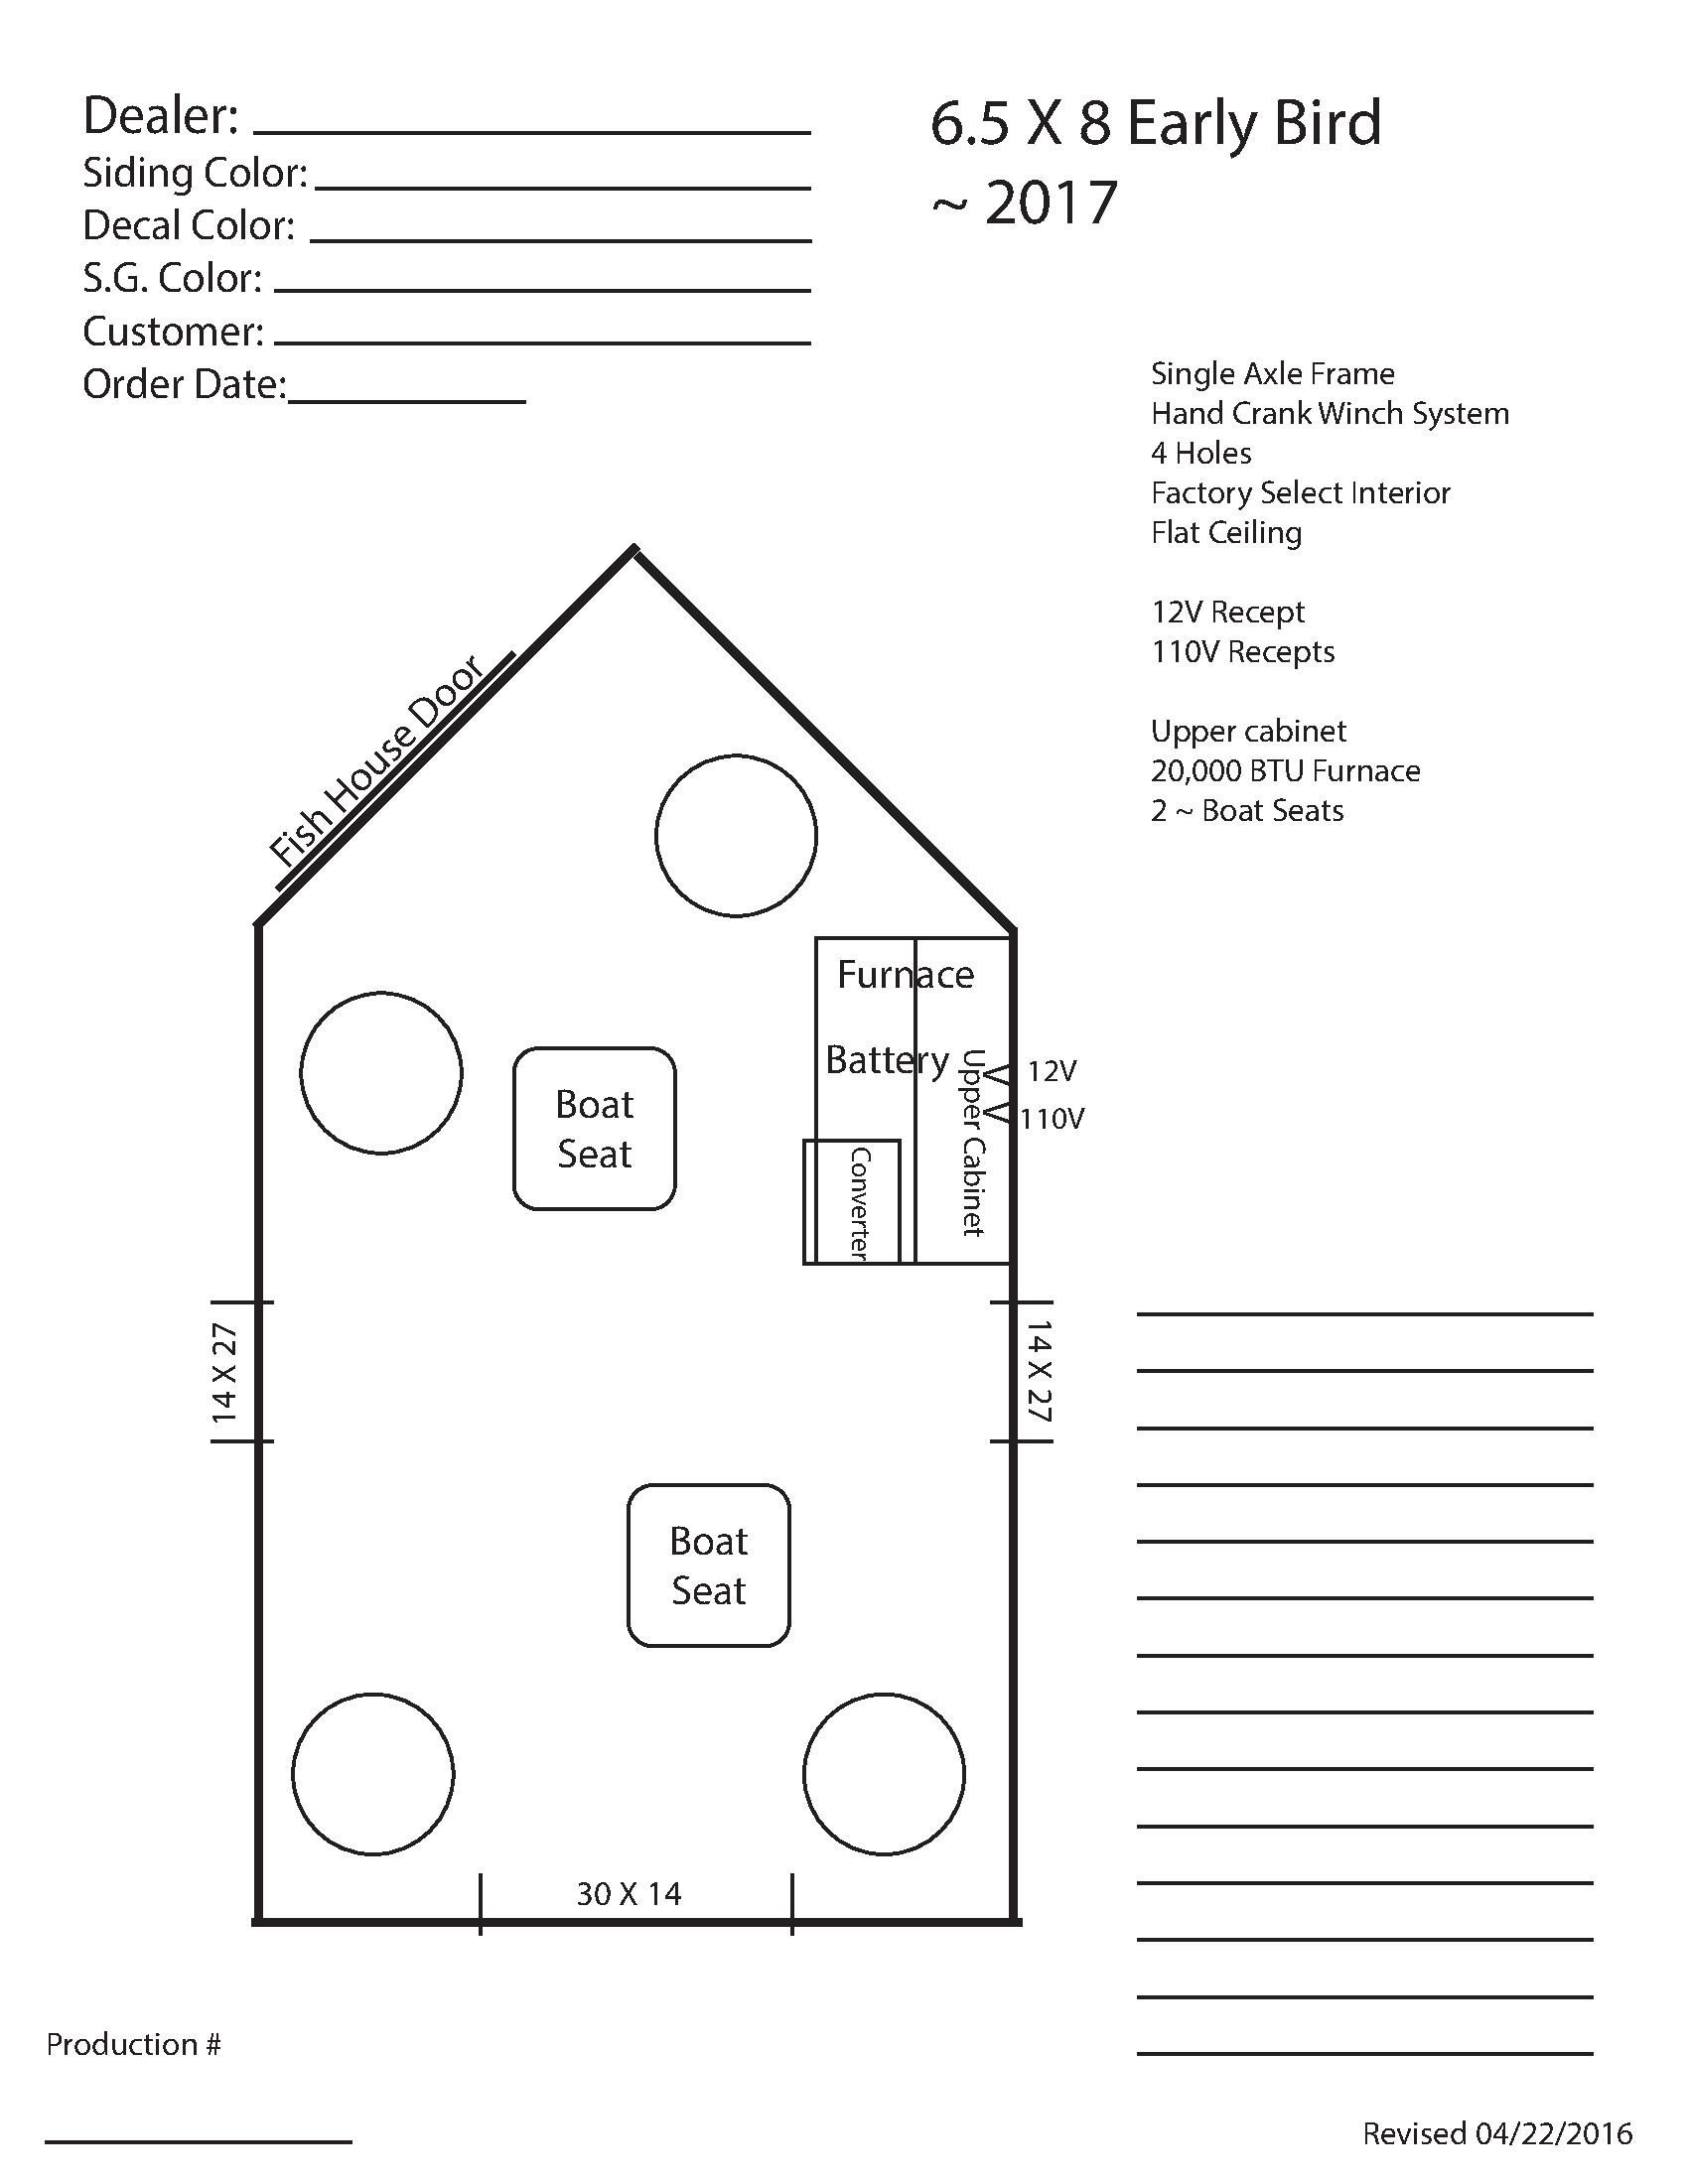 Ice Fishing House Plans Elegant Ice Castle Fish House Floor Plans Home Design with Images